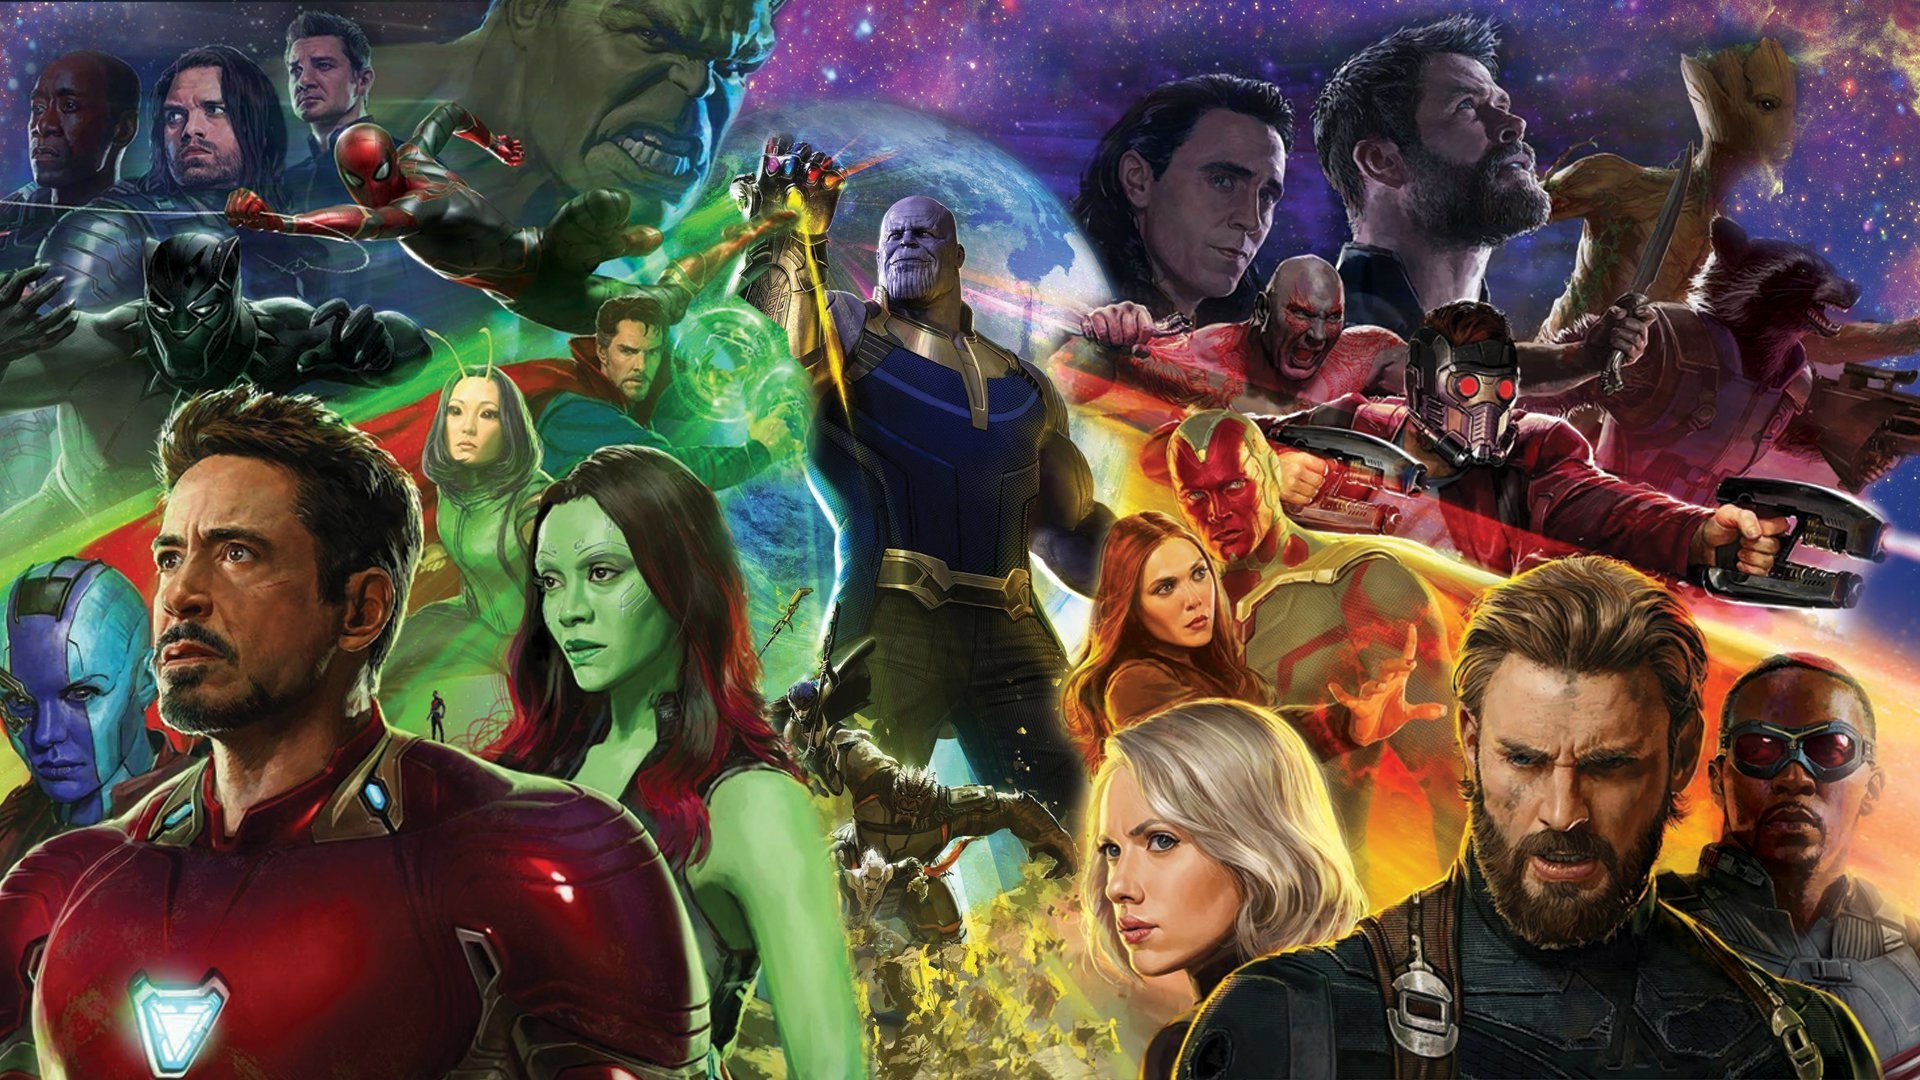 Avengers Infinity War Wallpaper 4